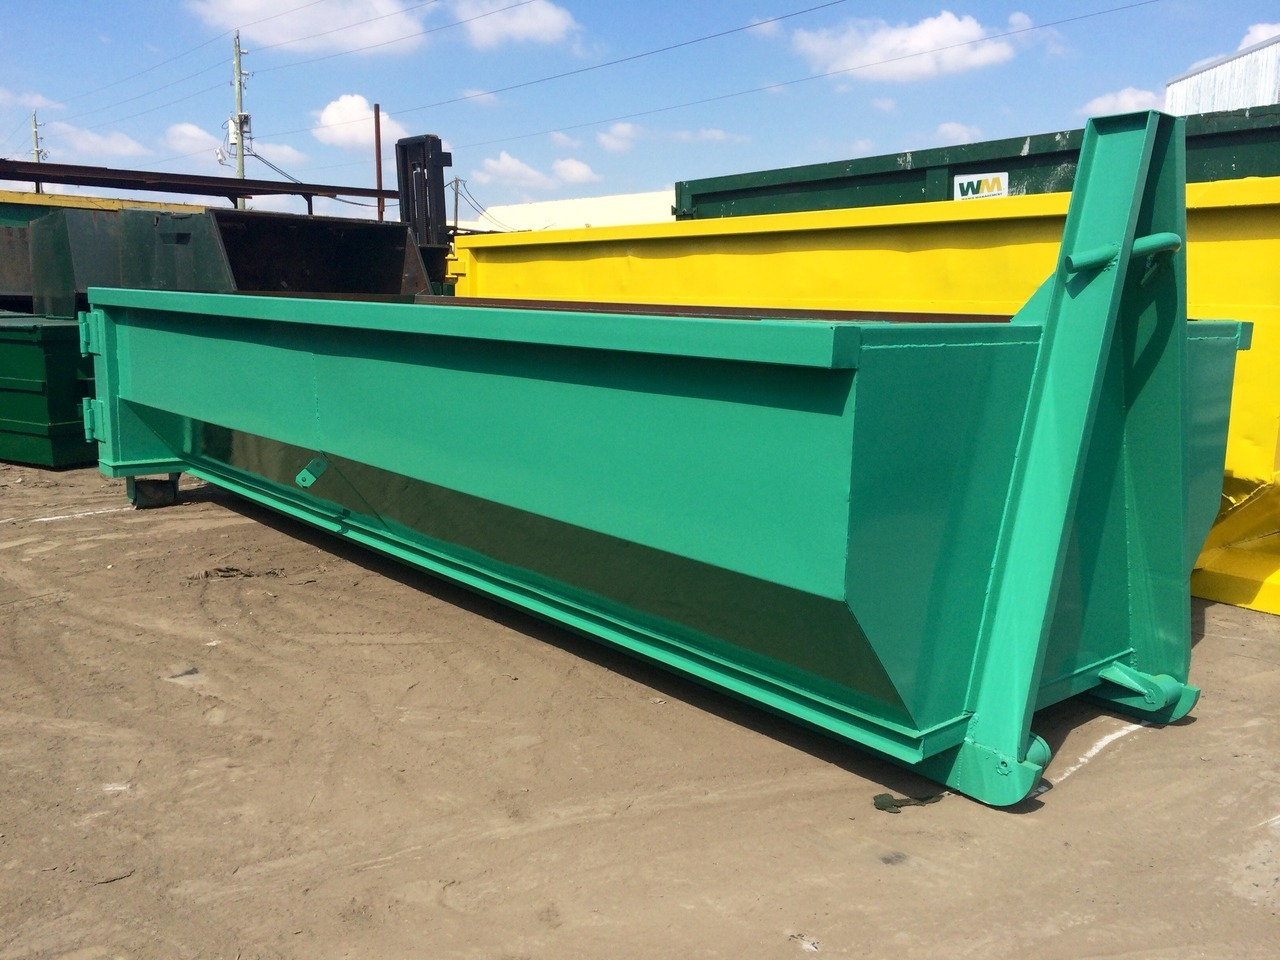 New, 2017, A PLUS, IES 20 CY ROLL OFF Hook Lift, Rolloff Containers